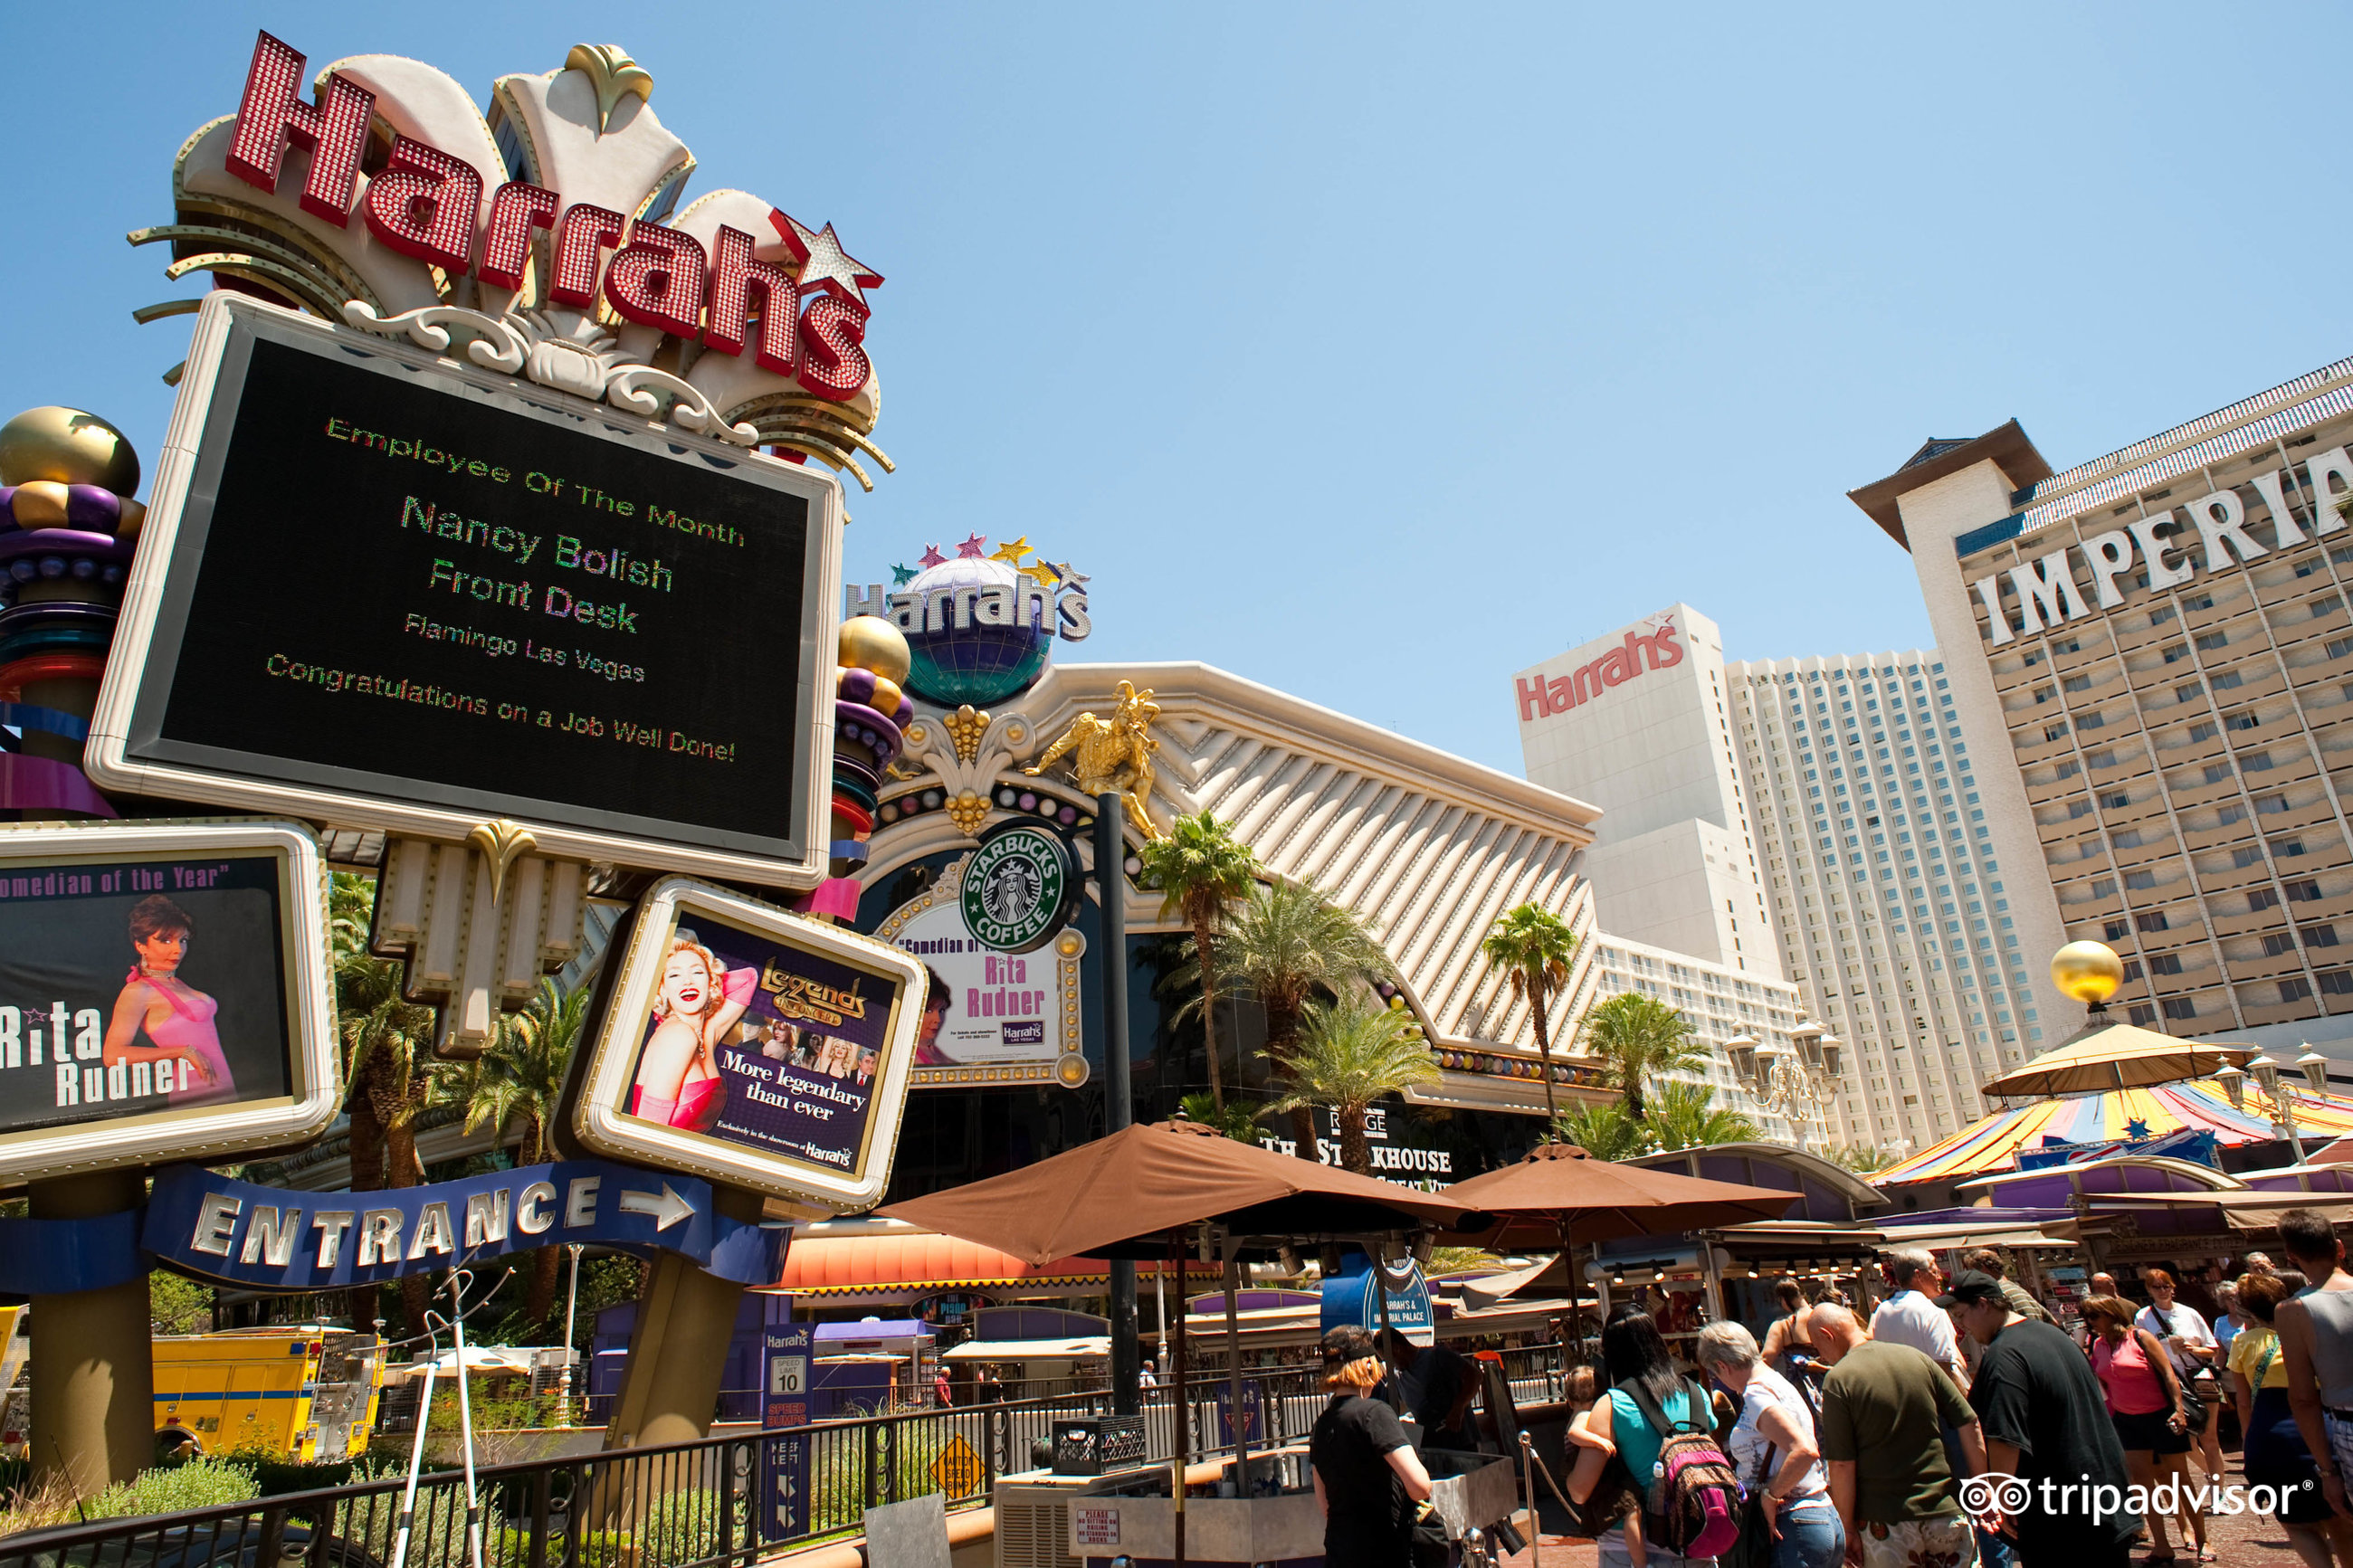 Harrahs hotel and casino + las vegas chicago casino poker tournaments